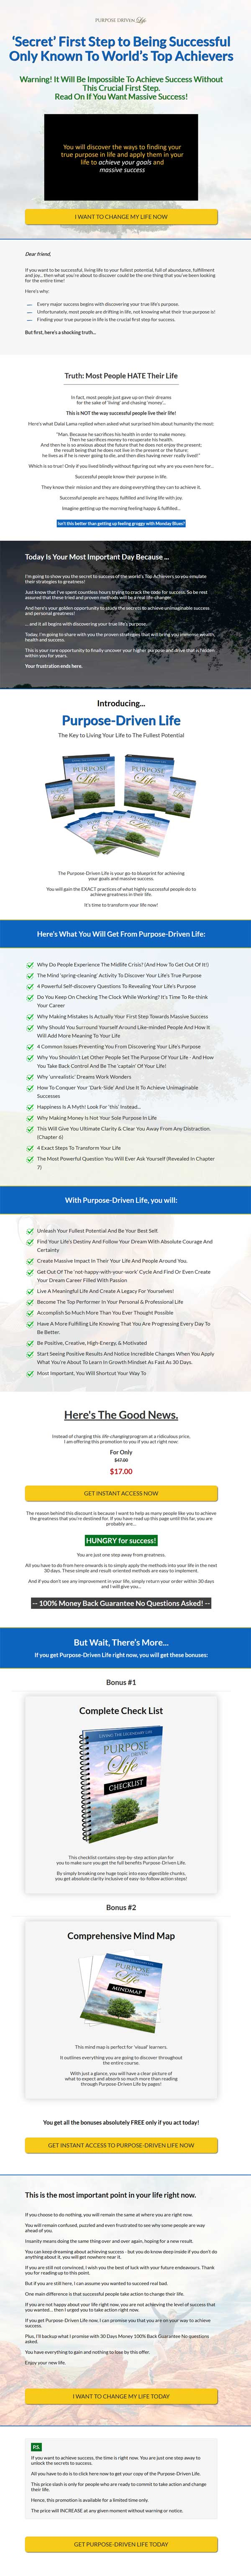 Purpose Driving Life Ebook and Videos MRR